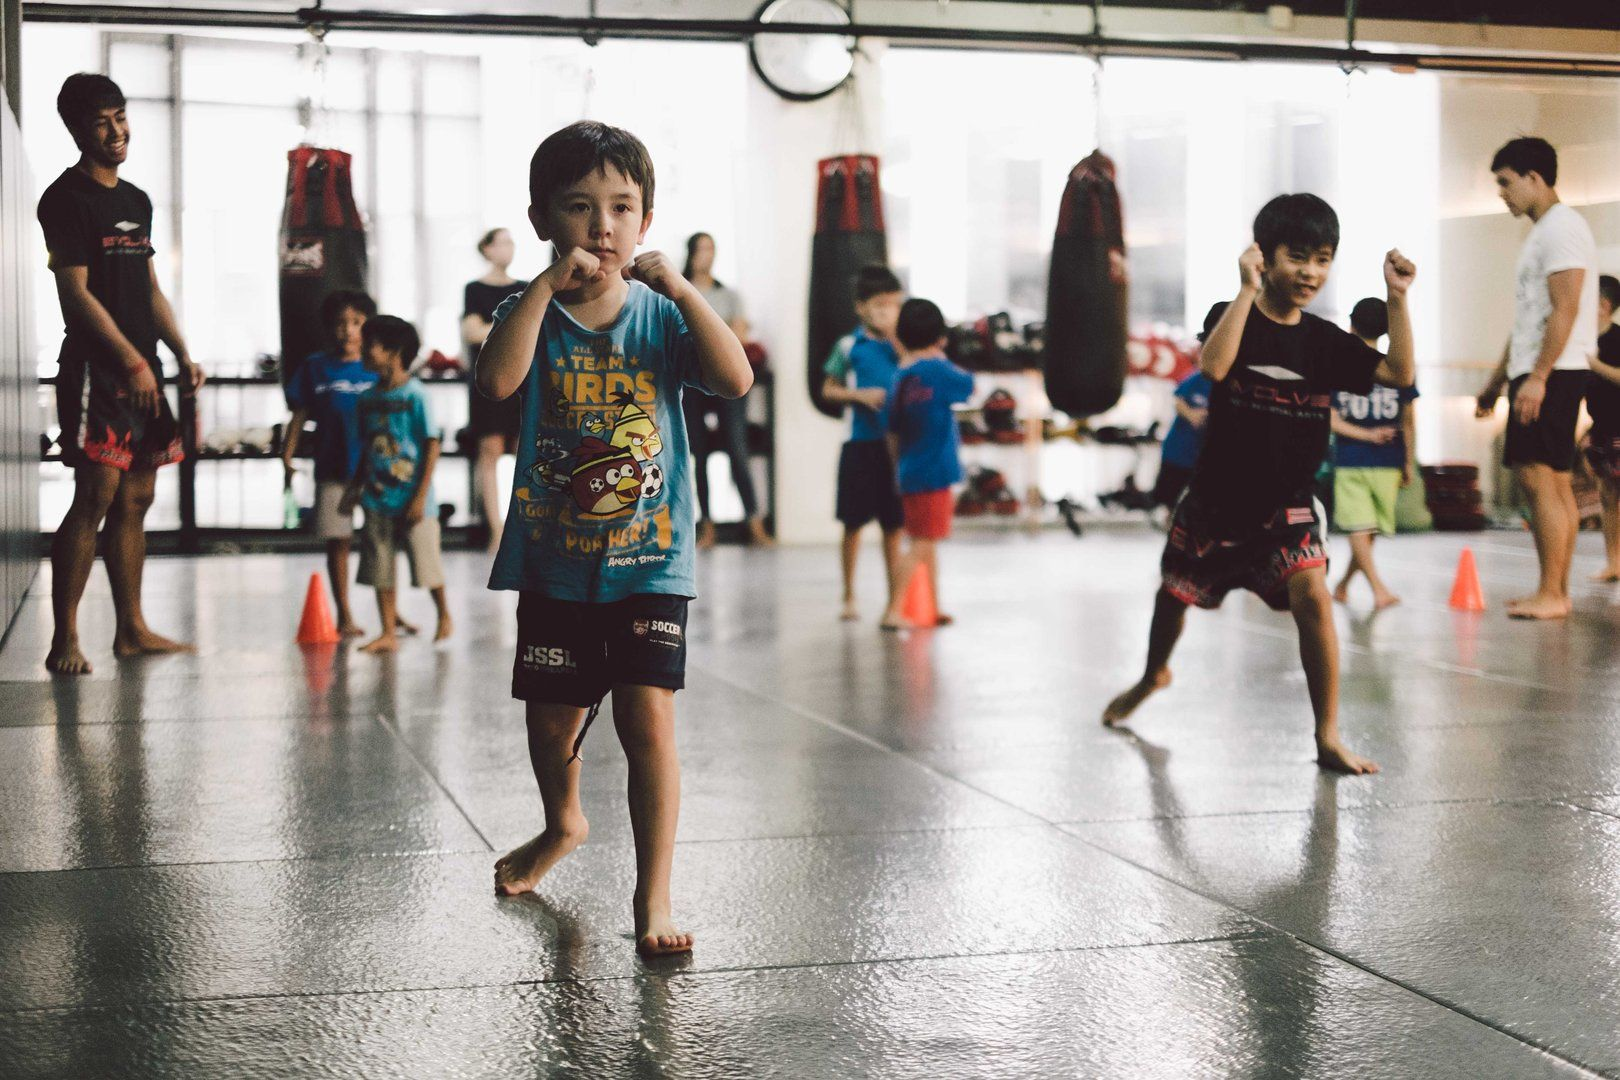 Kick-start a happy, healthy lifestyle for your kids by letting them train Muay Thai.